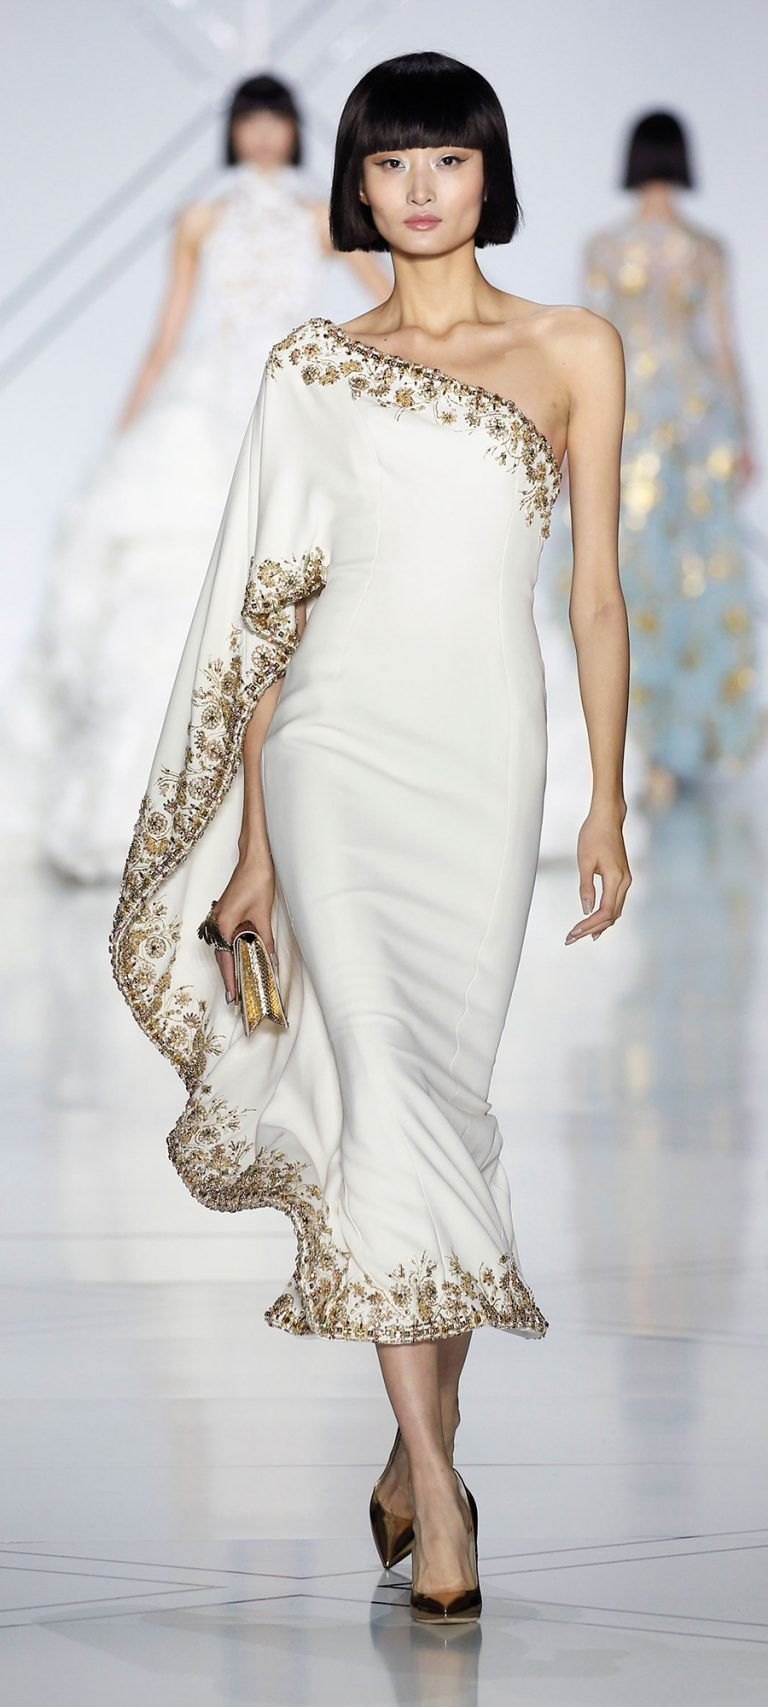 Ralph u russo spring summer collection fashion is my passion